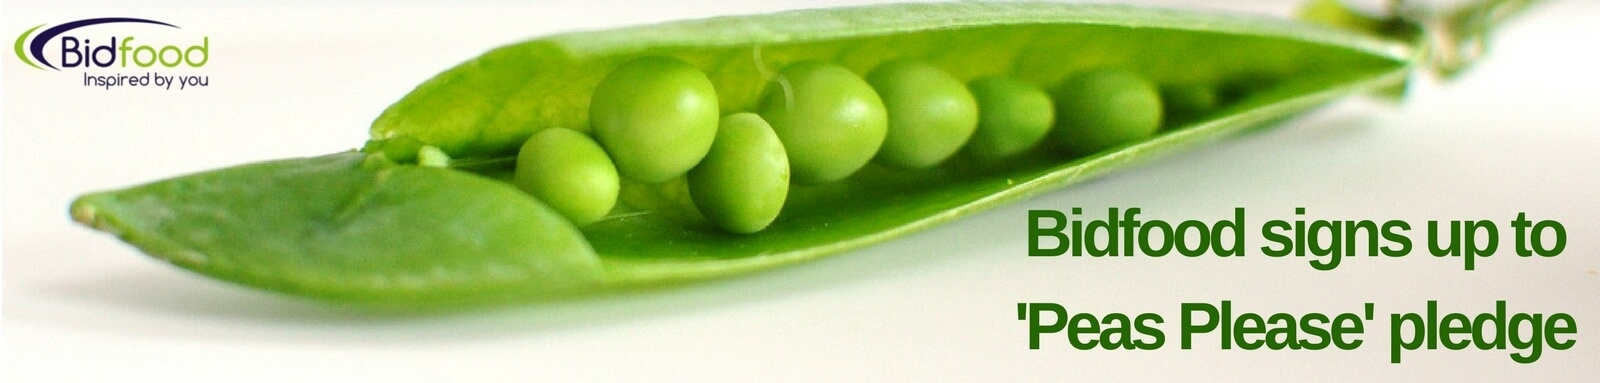 Bidfood signs up to 'Peas Please' pledge